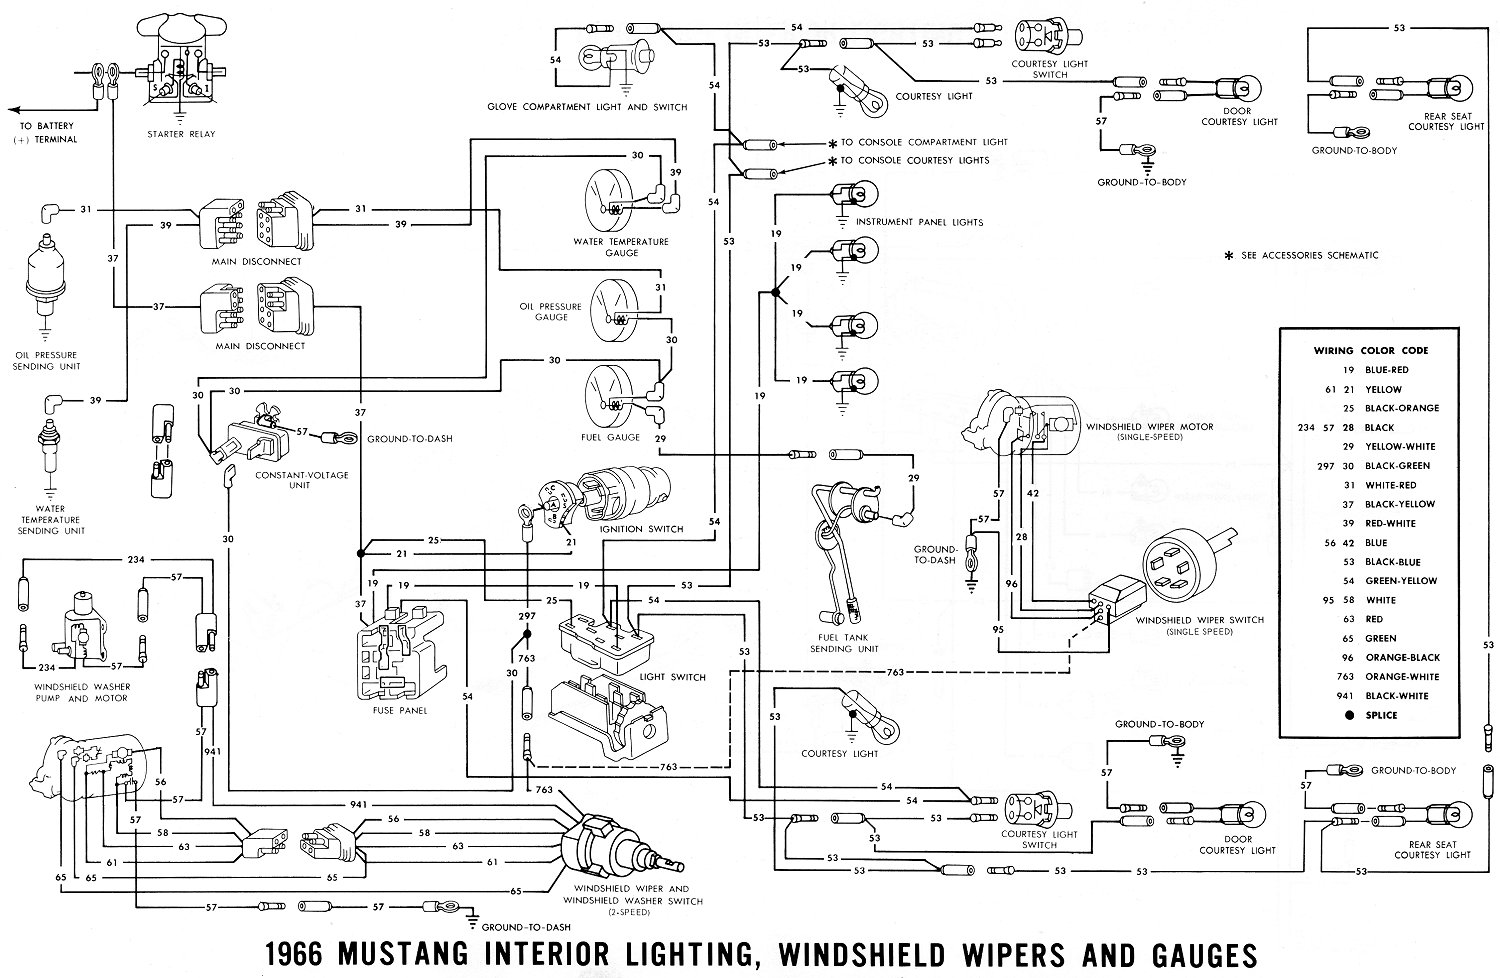 hight resolution of 1966 mustang wiring diagrams average joe restoration rh averagejoerestoration com 1966 mustang color wiring diagram 1966